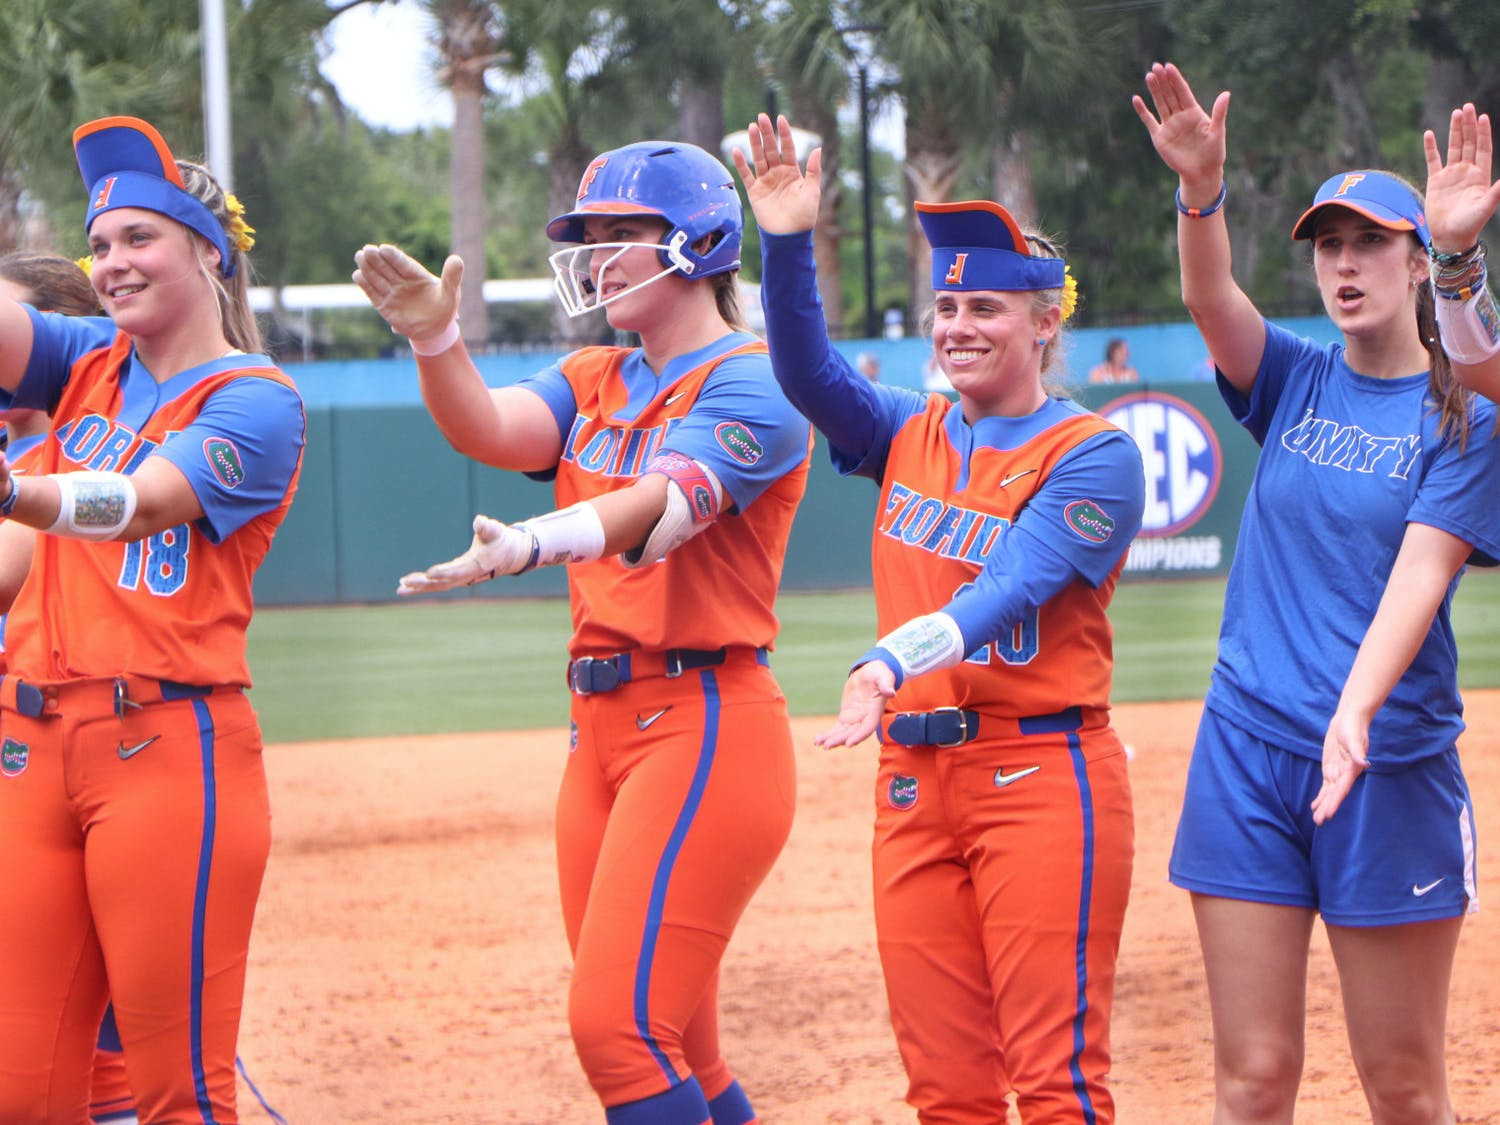 Members of the Florida softball team celebrate after a 1-0 victory over USF Friday